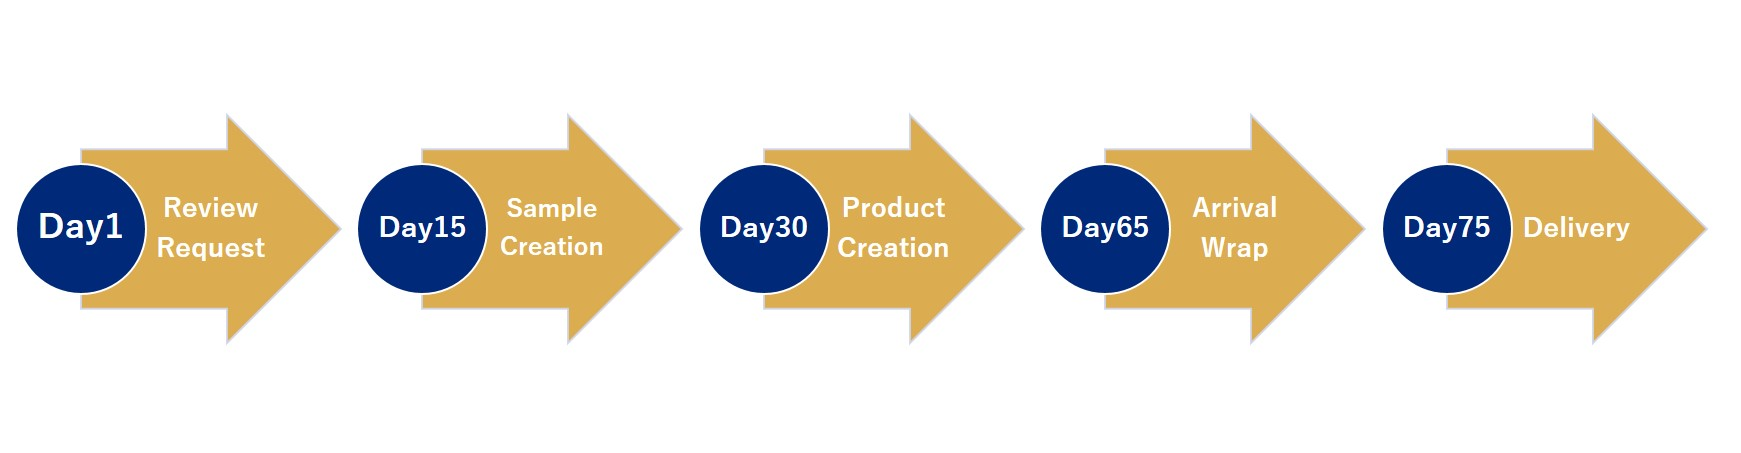 Image of custom-made products order process